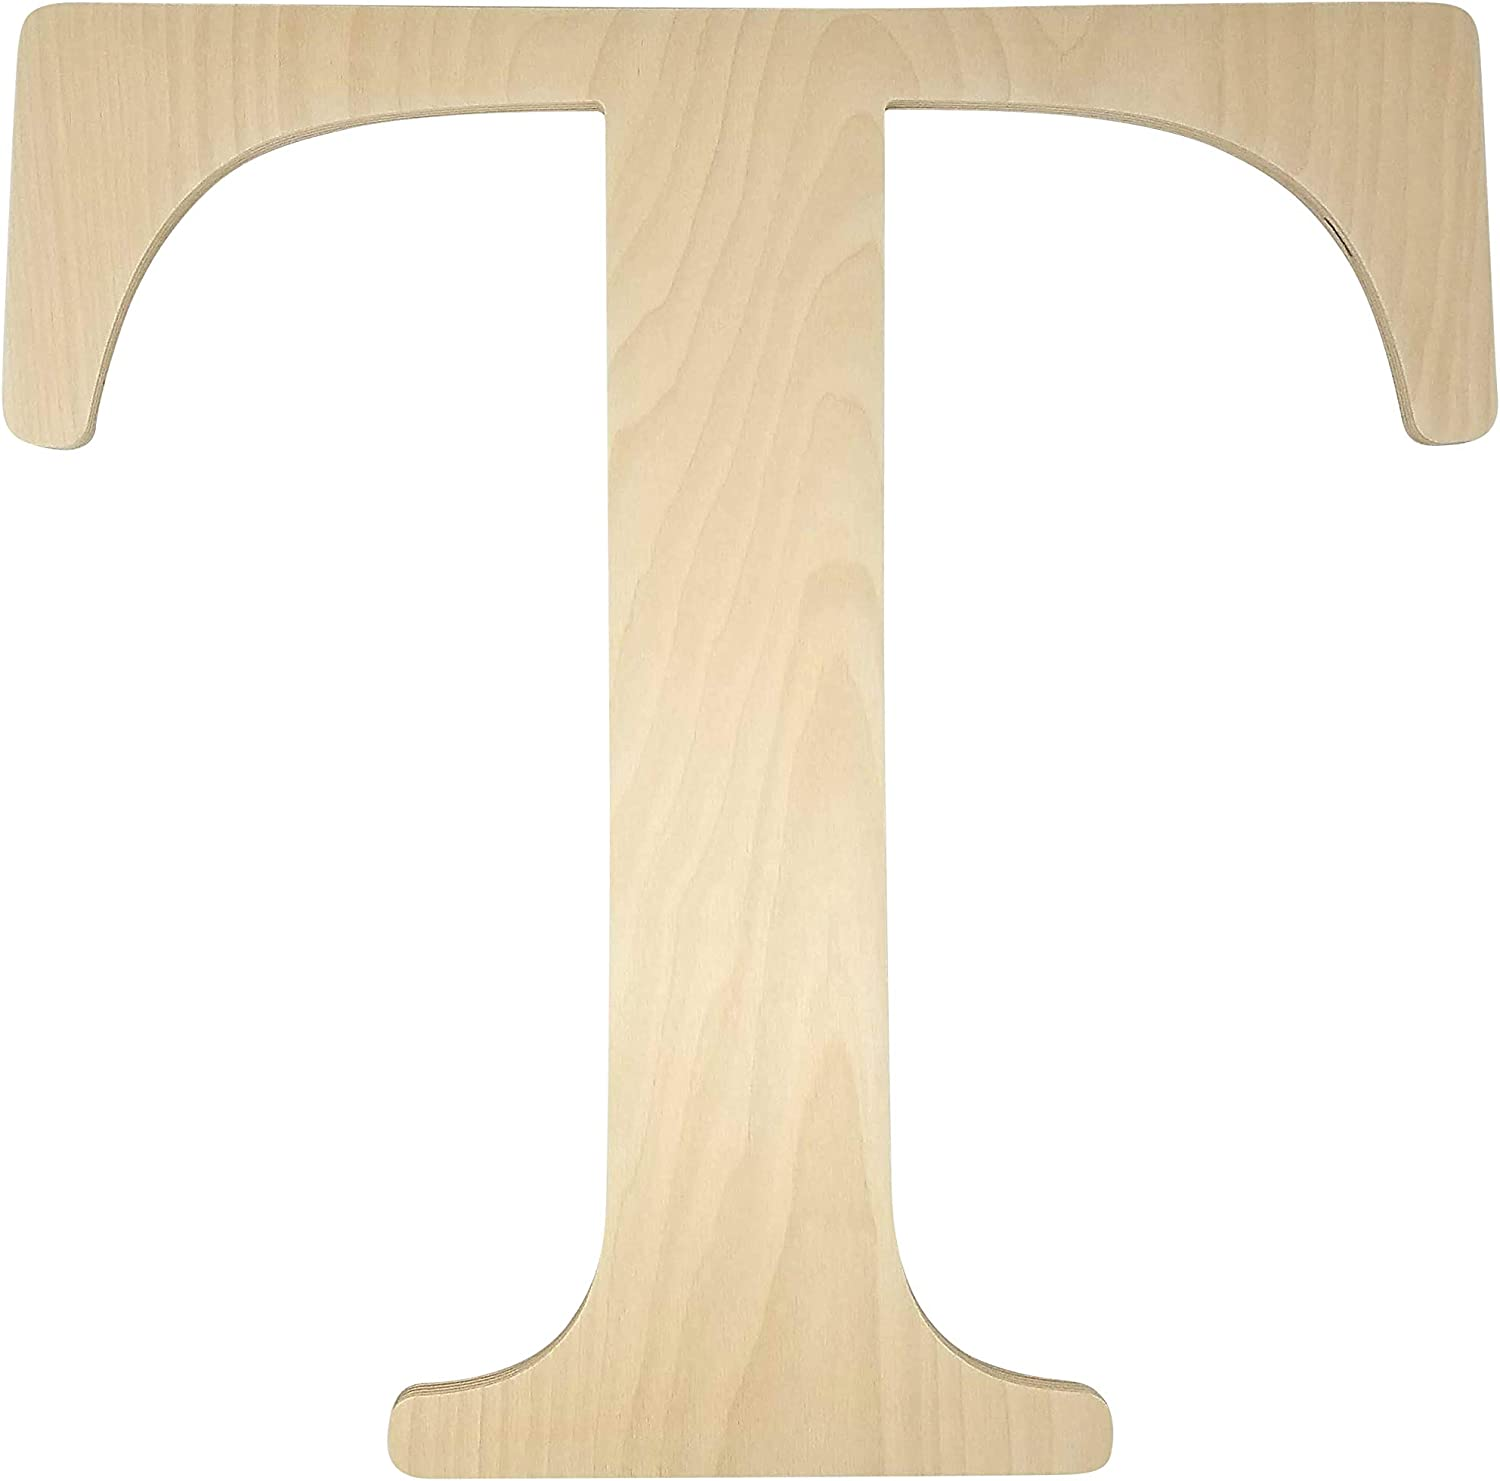 "Unfinished Wooden Letter for Wedding Guest Book Alternative or Wall Decor (24"") (Letter T)"